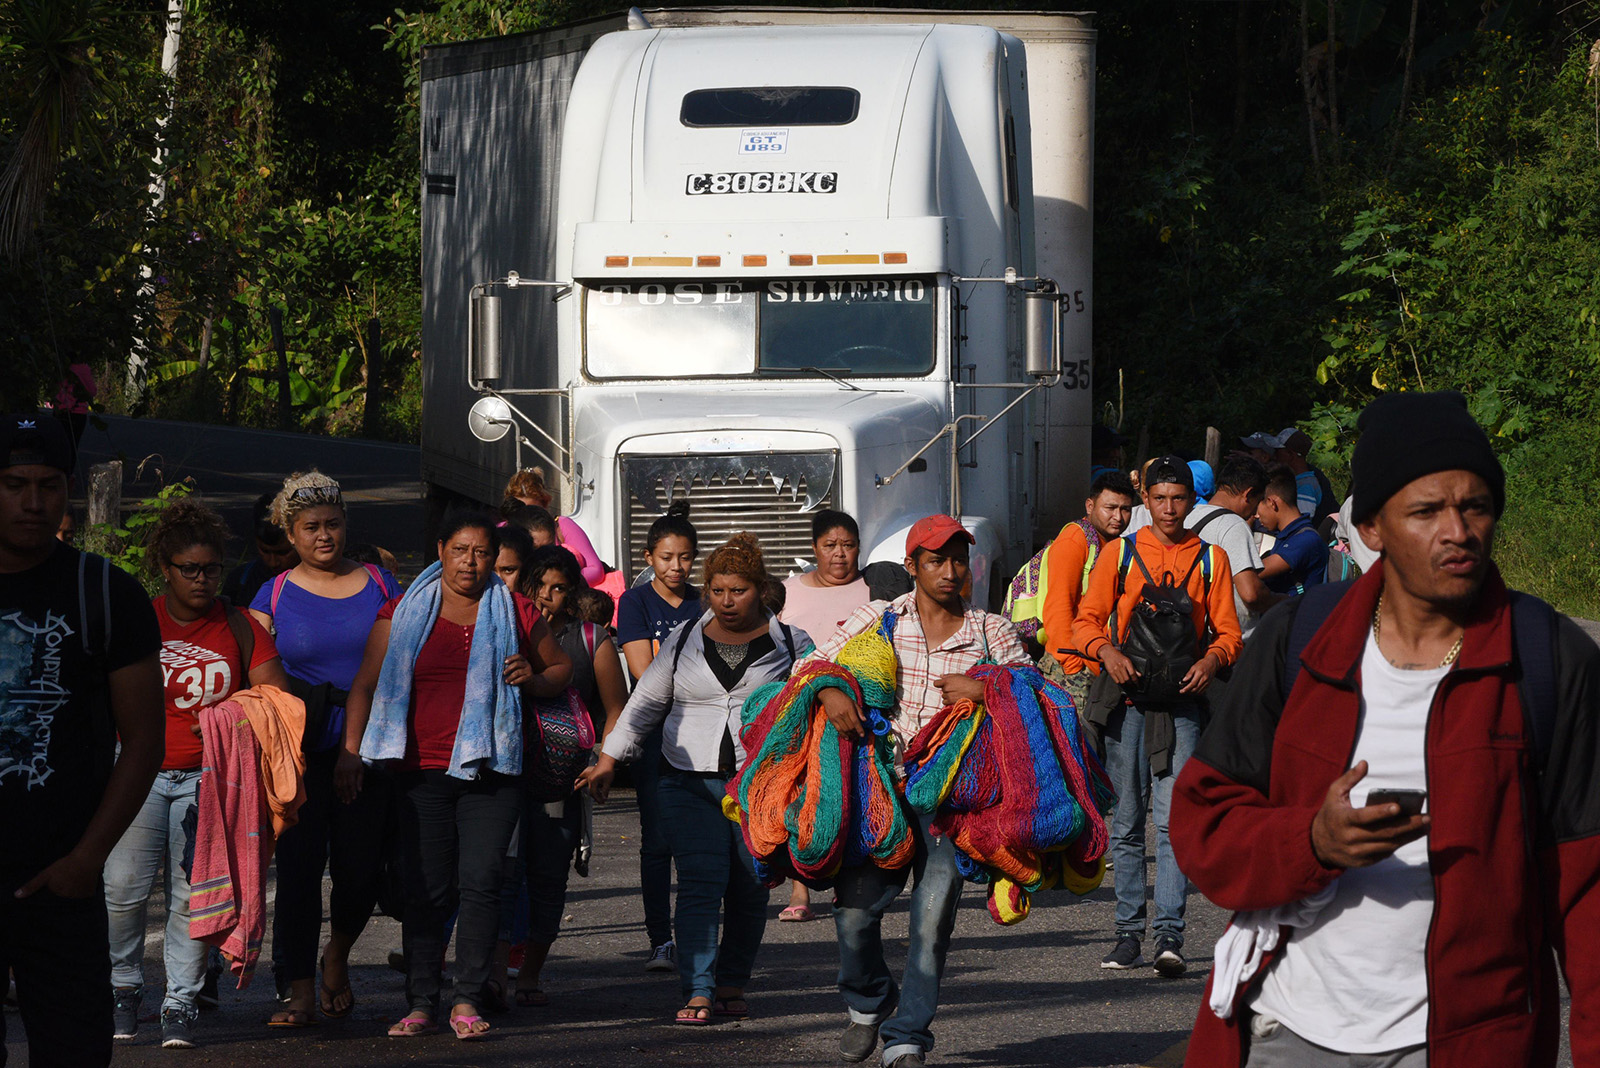 https://americanmilitarynews.com/wp-content/uploads/WORLD-NEWS-IMMIGRANTS-CARAVAN-GET.jpg